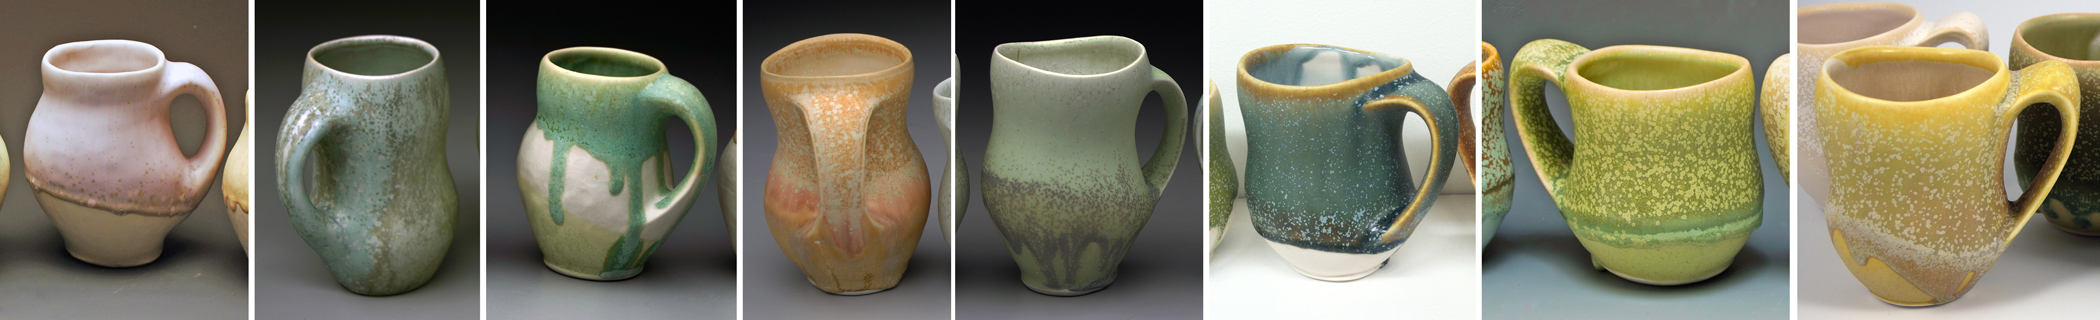 These images show the evolution of my mugs since I began exploring a form that I initially was calling a vertigo design.  Some of the transformations are internal to the mug, or to the process of making.  Others you can see happening, like watching the development of a hollow handle that harmonized with the form.